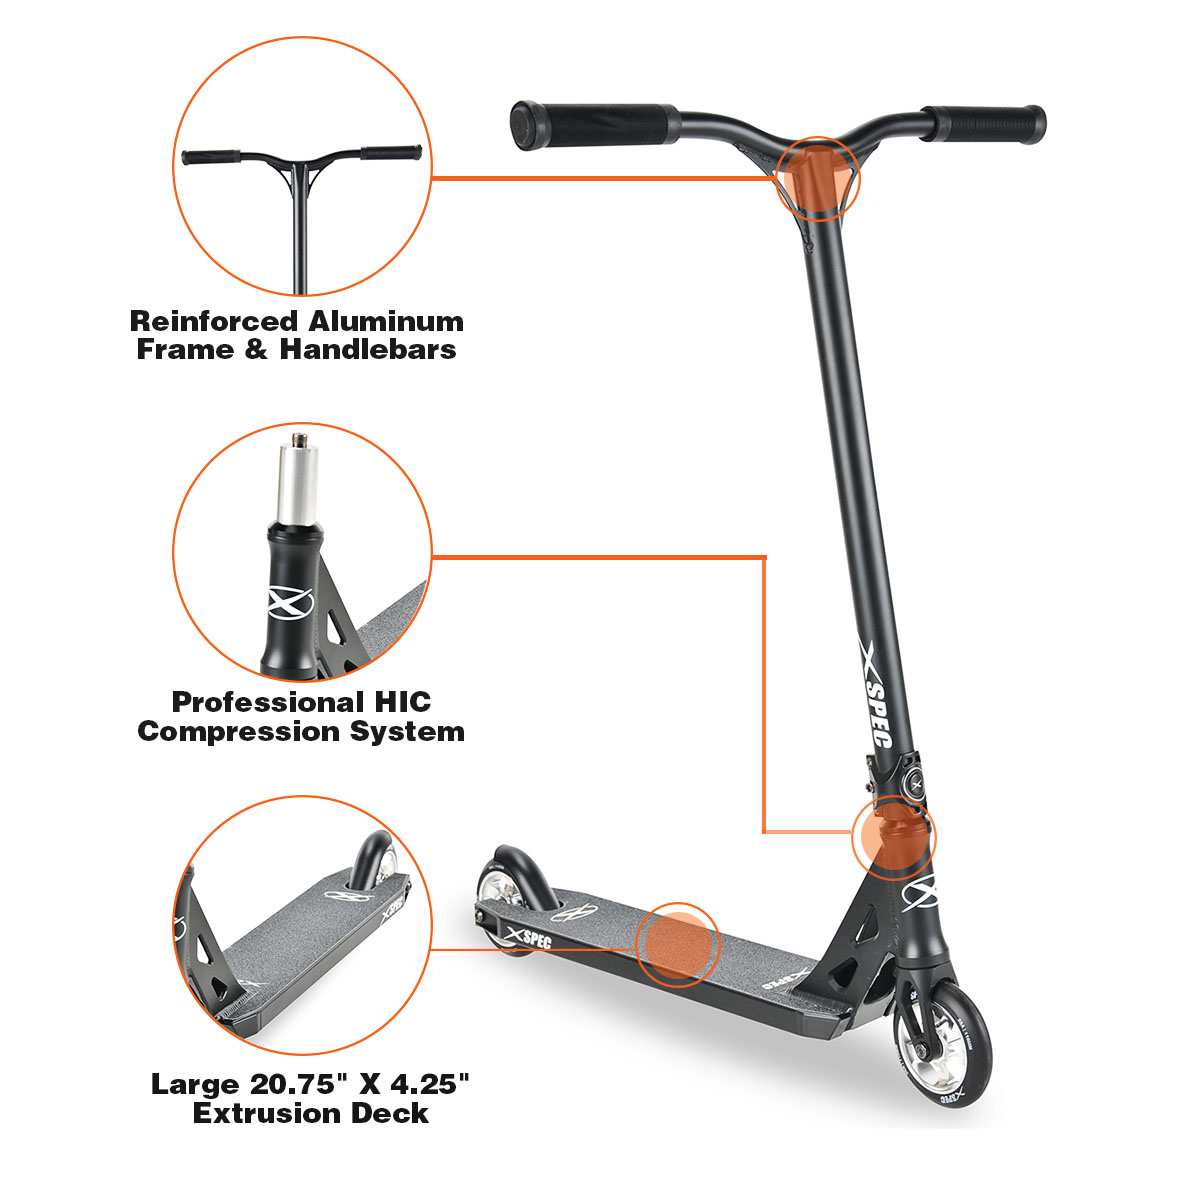 Xspec 912 Aluminum Outdoor Pro Push Stunt Kick Scooter, Black by Xspec